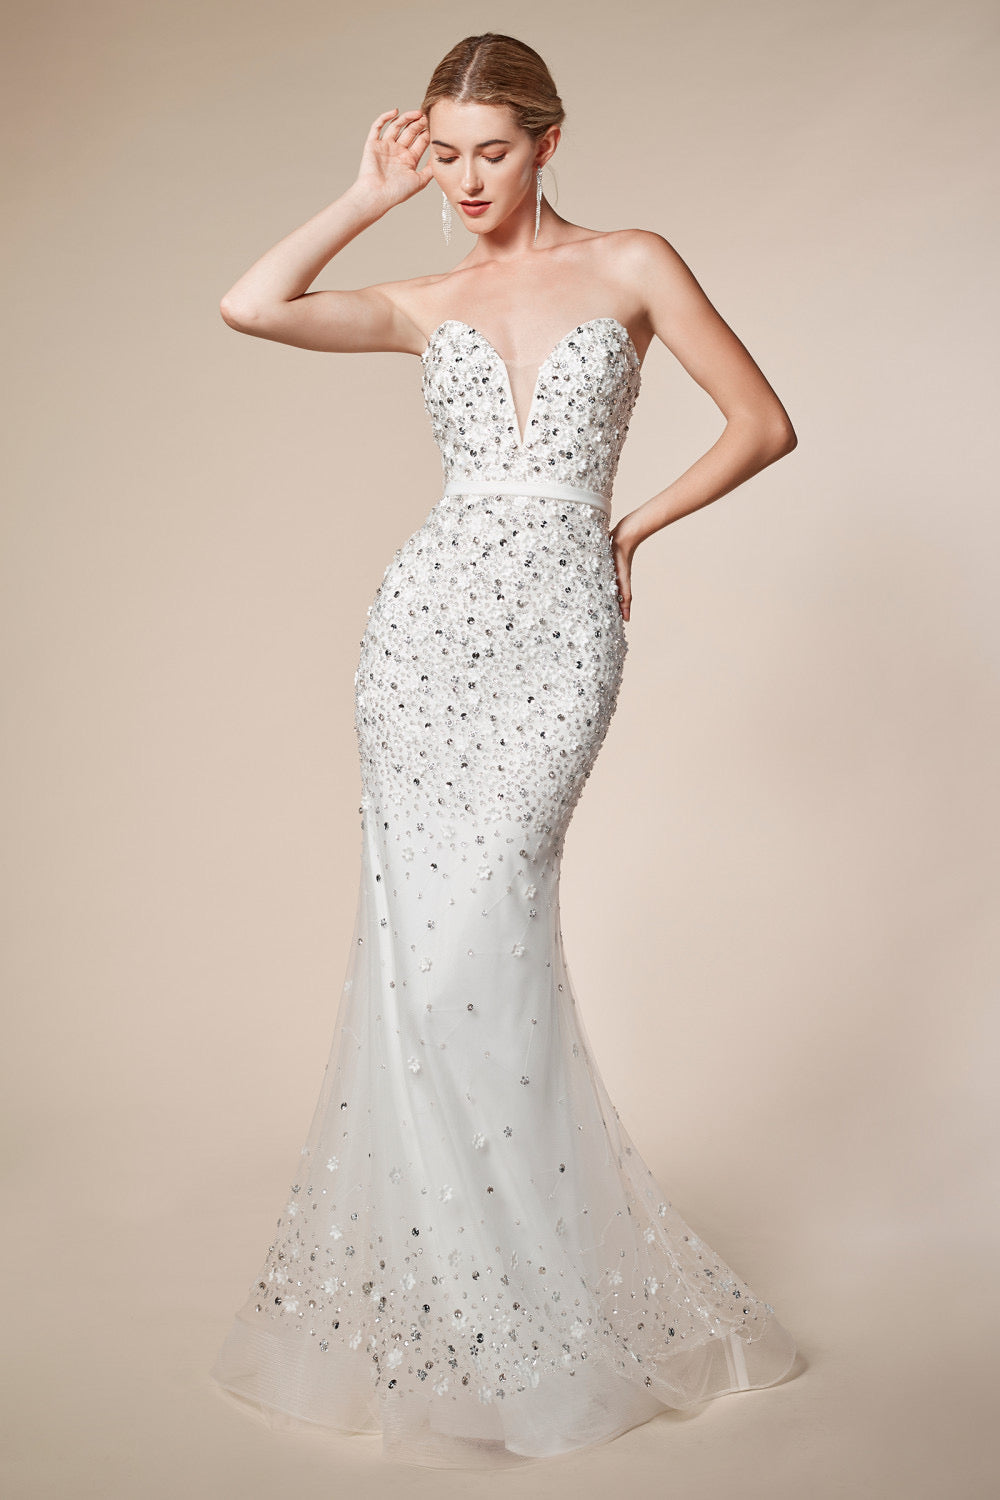 AL Sweetheart Springrain Beaded Mermaid Gown